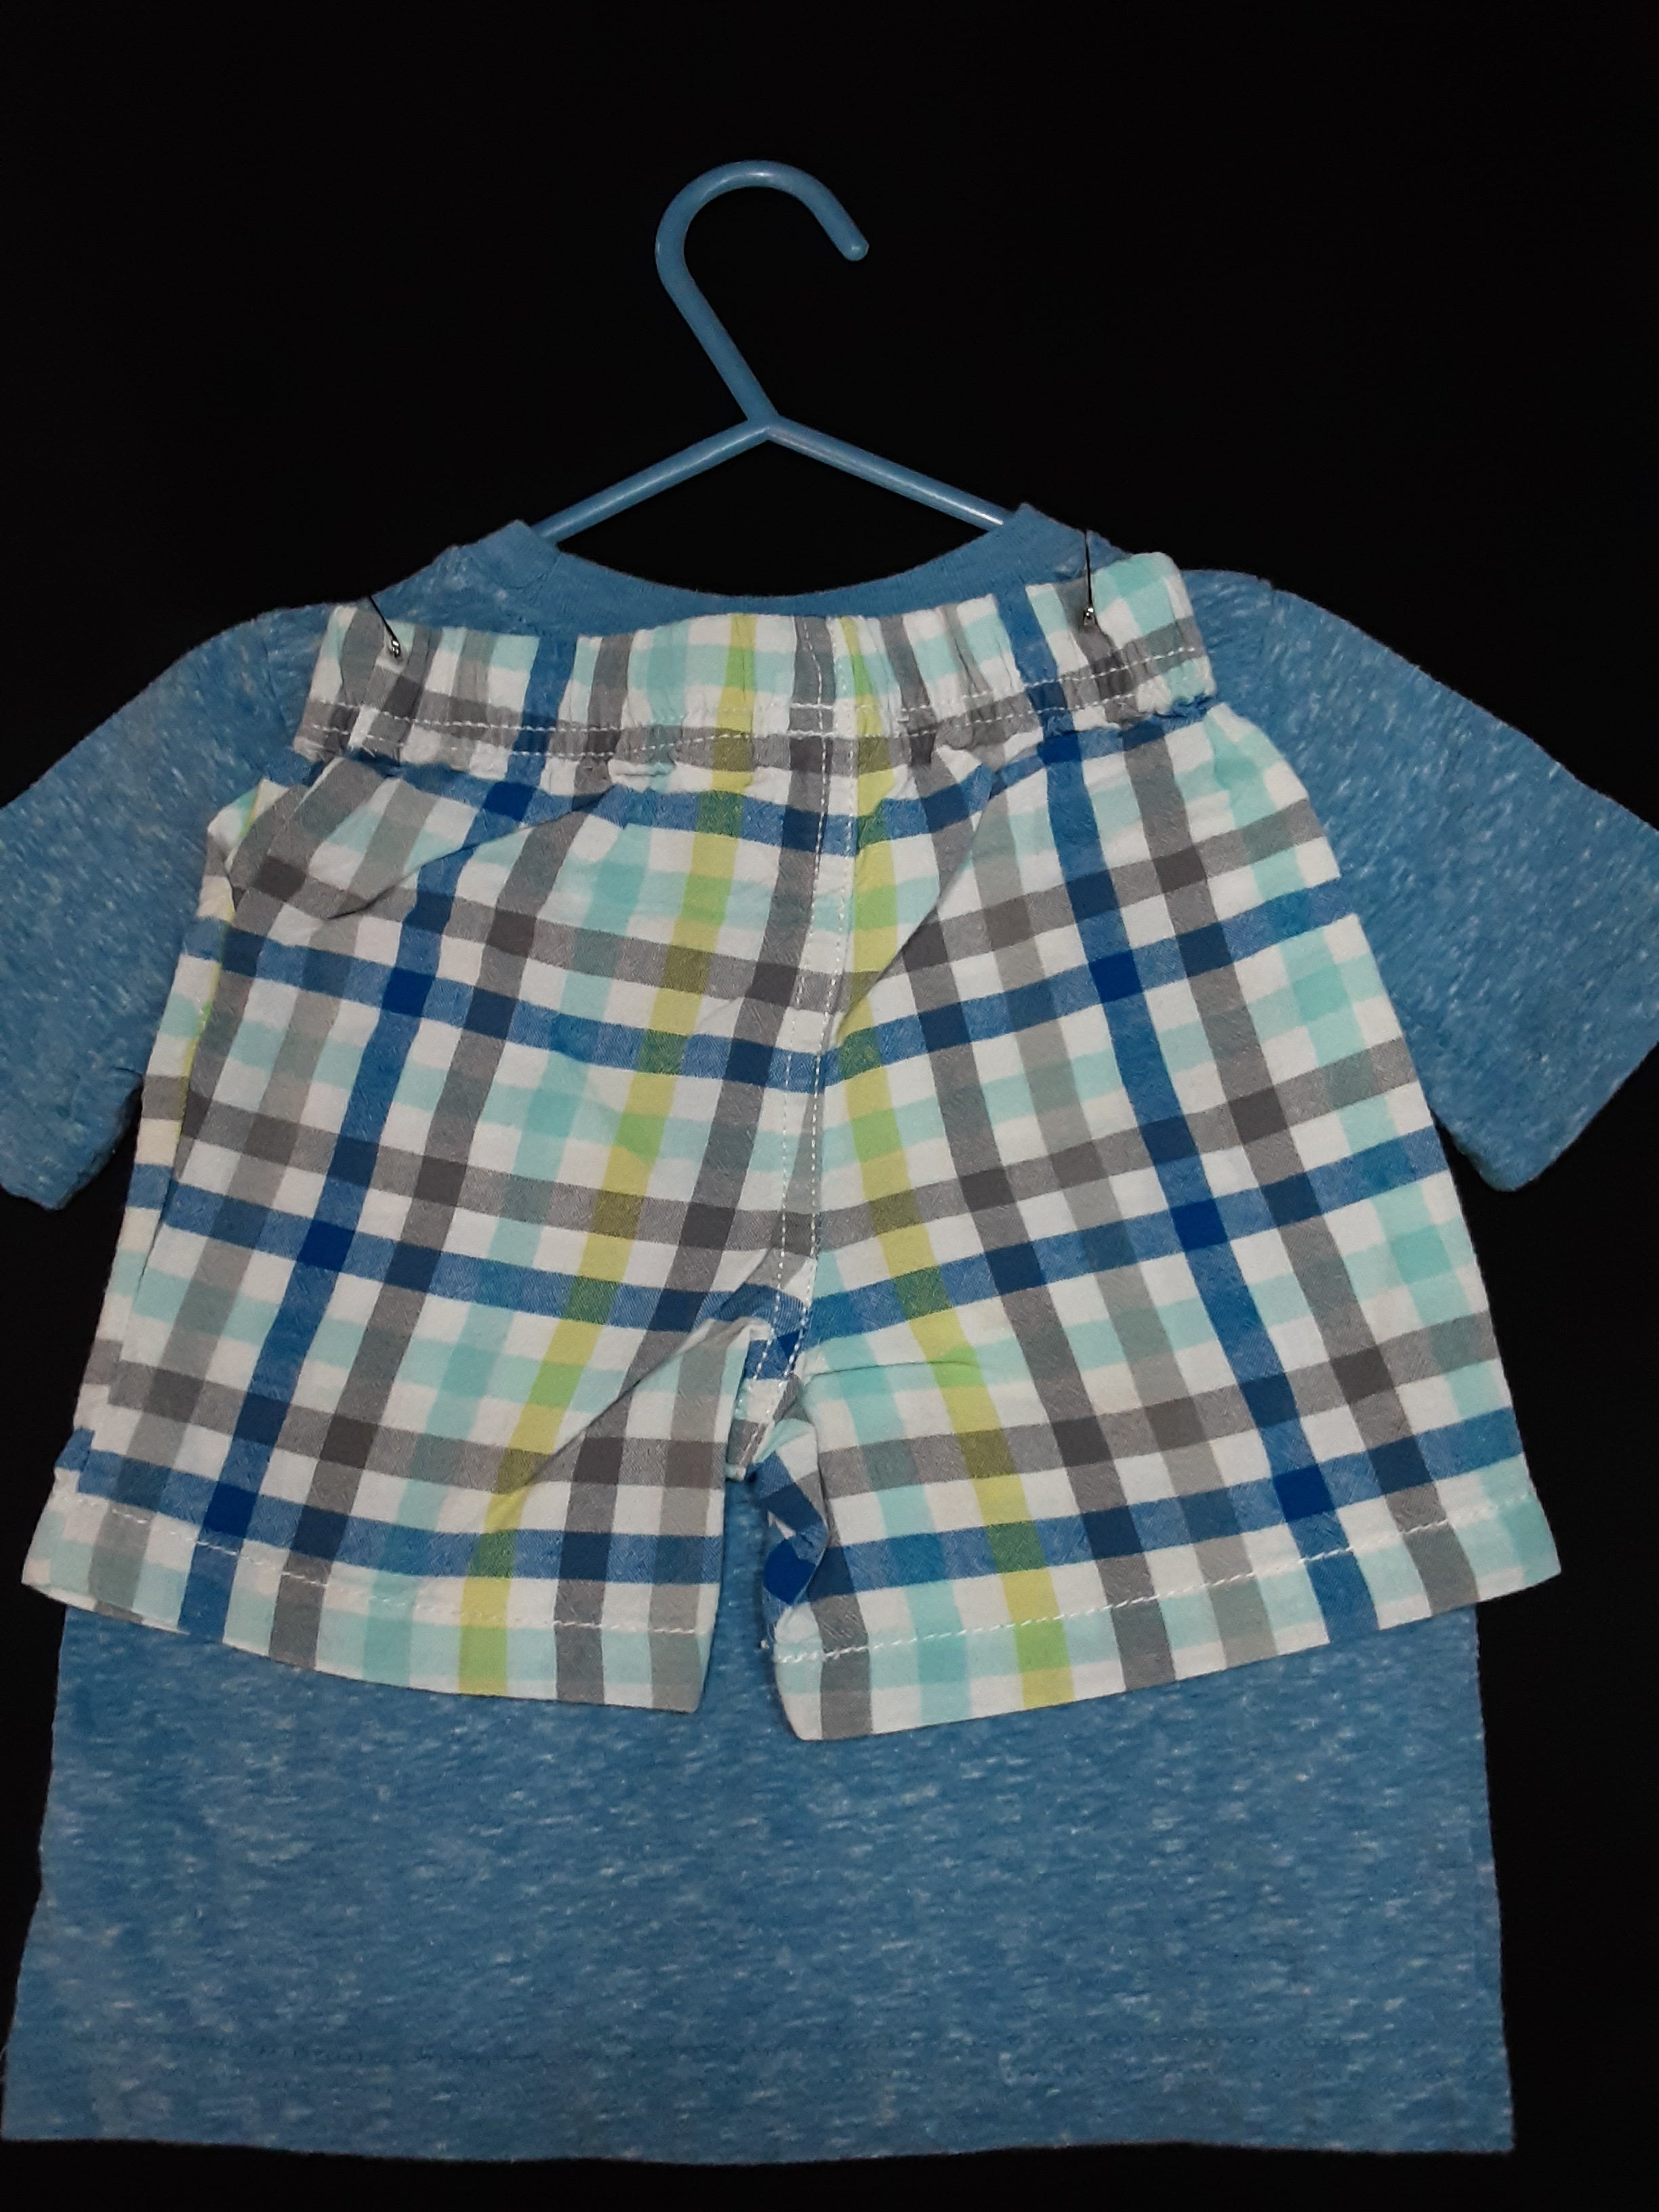 JUMPING  BEAN blue whale shirt with checkered  shorts  Size 18m boys